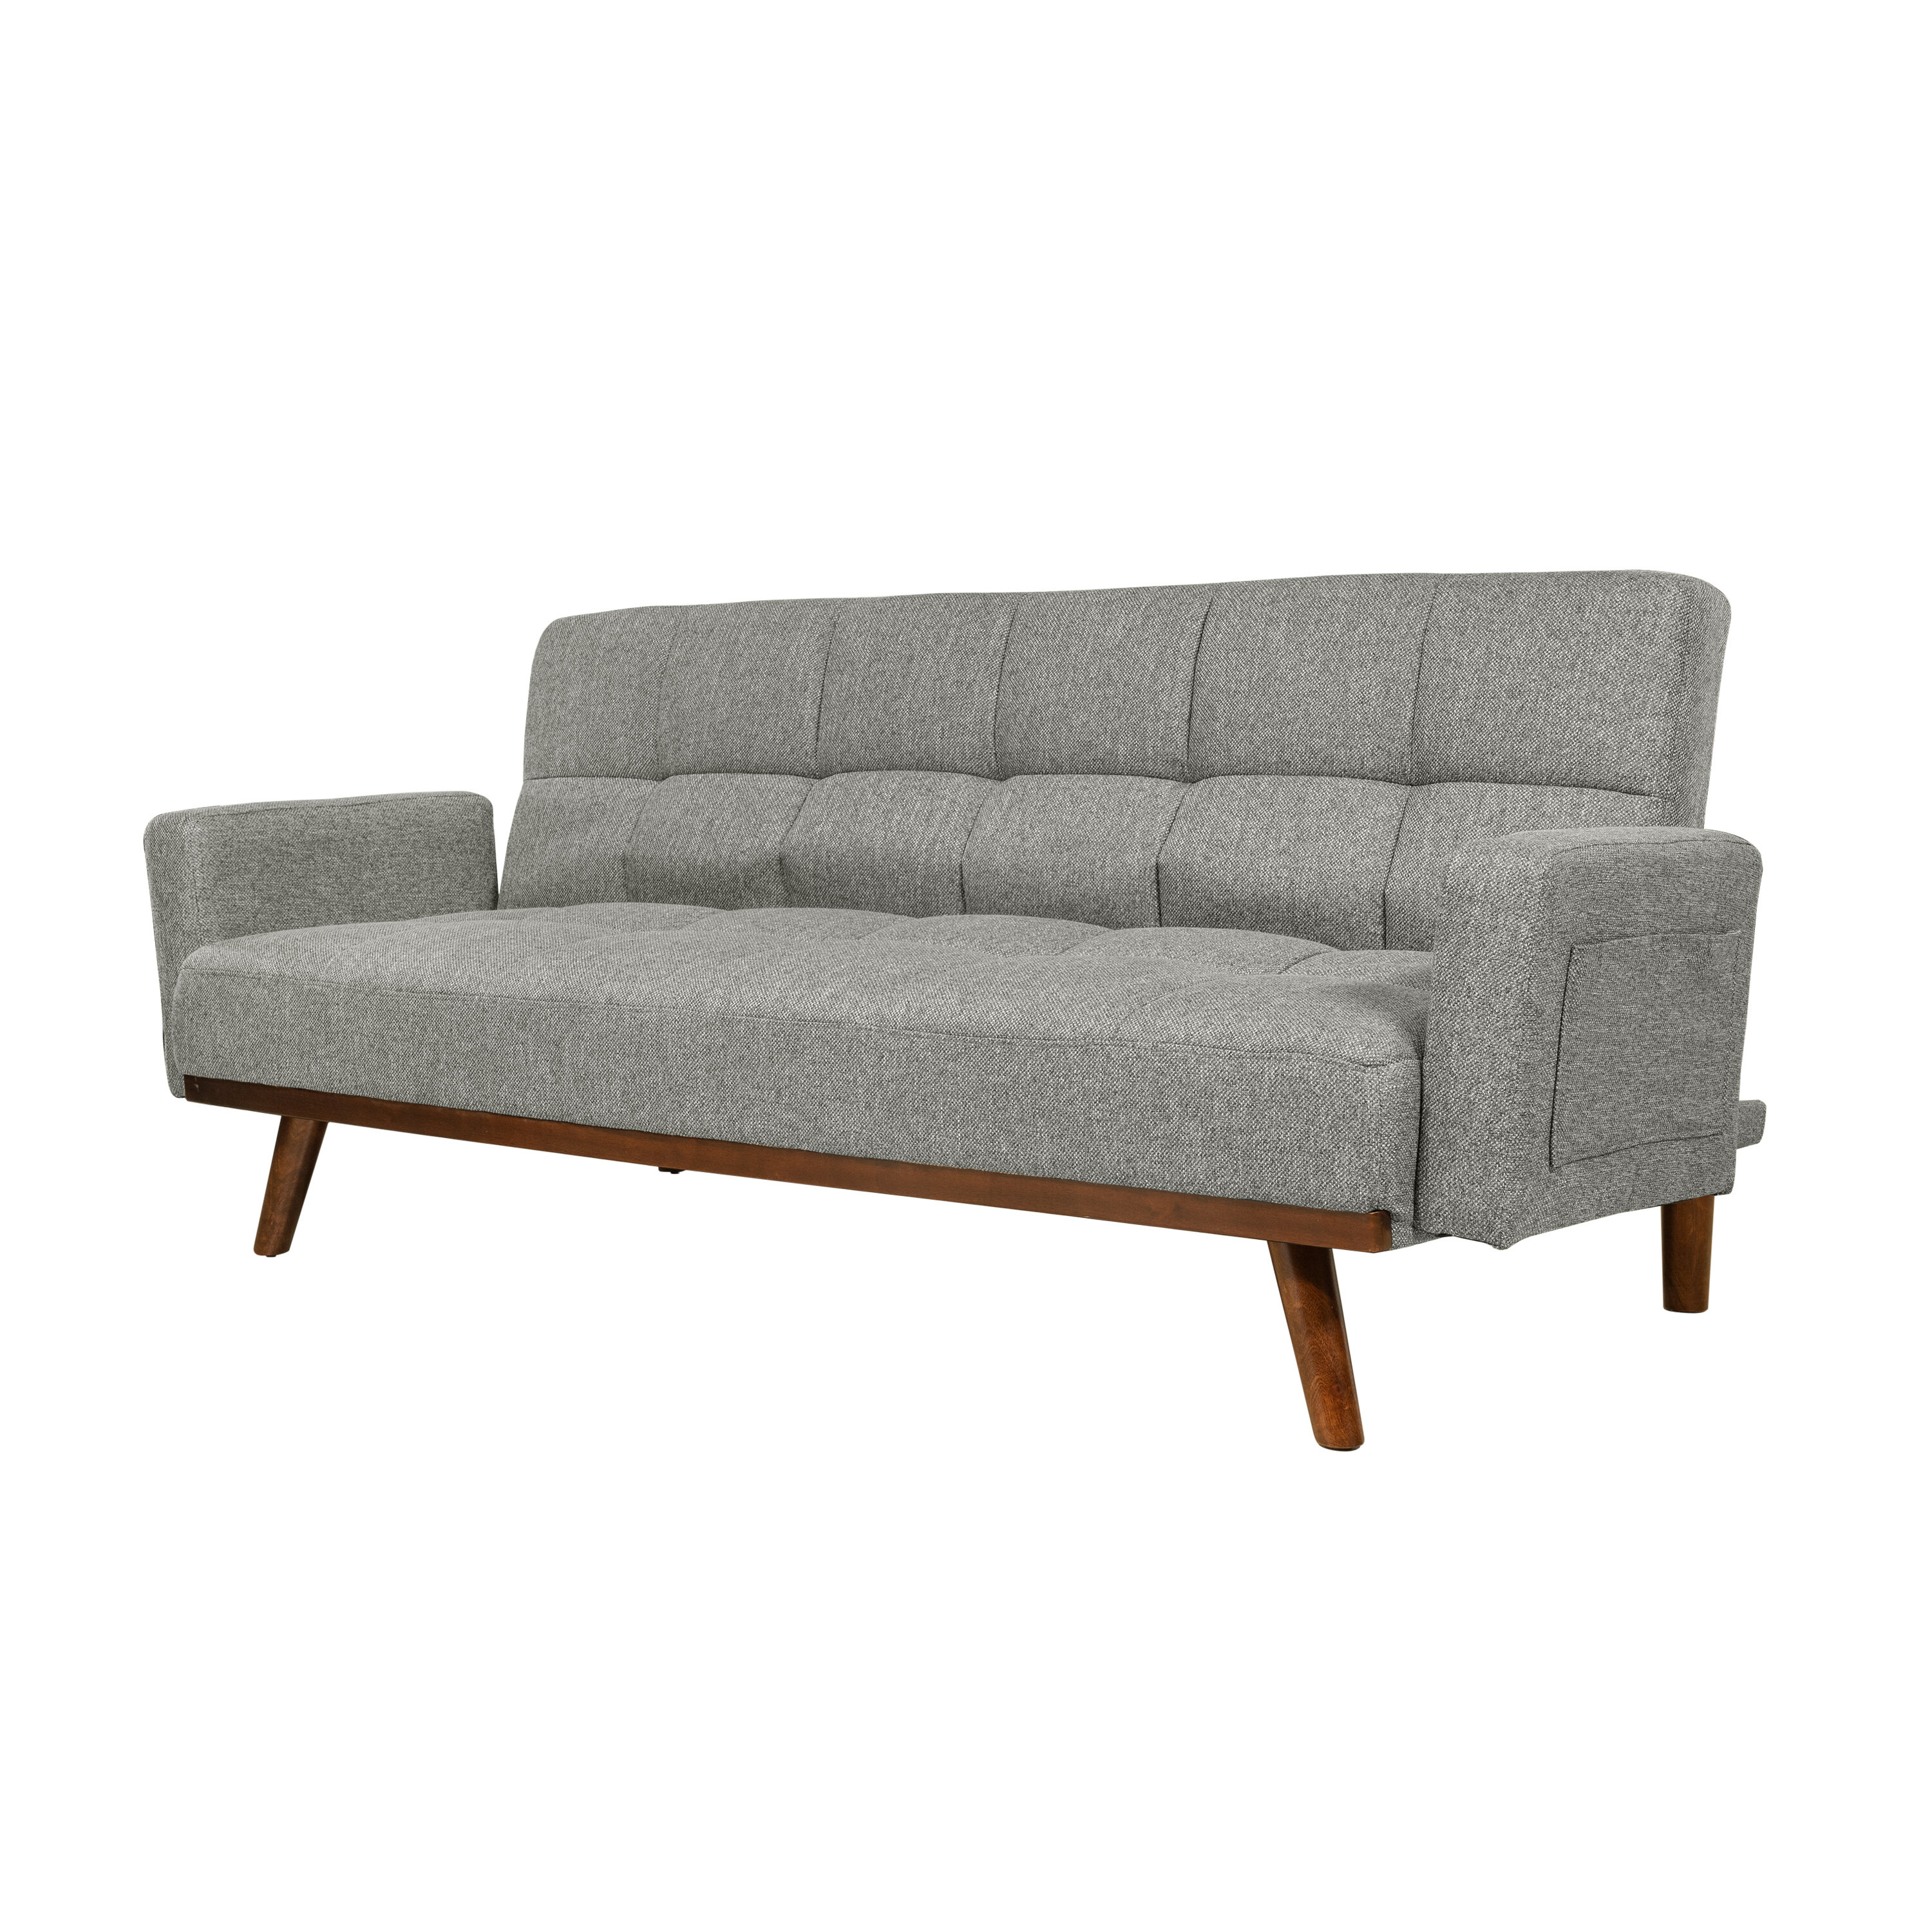 George Oliver Summer Modern Futon Sofa Sleeper & Reviews | Wayfair